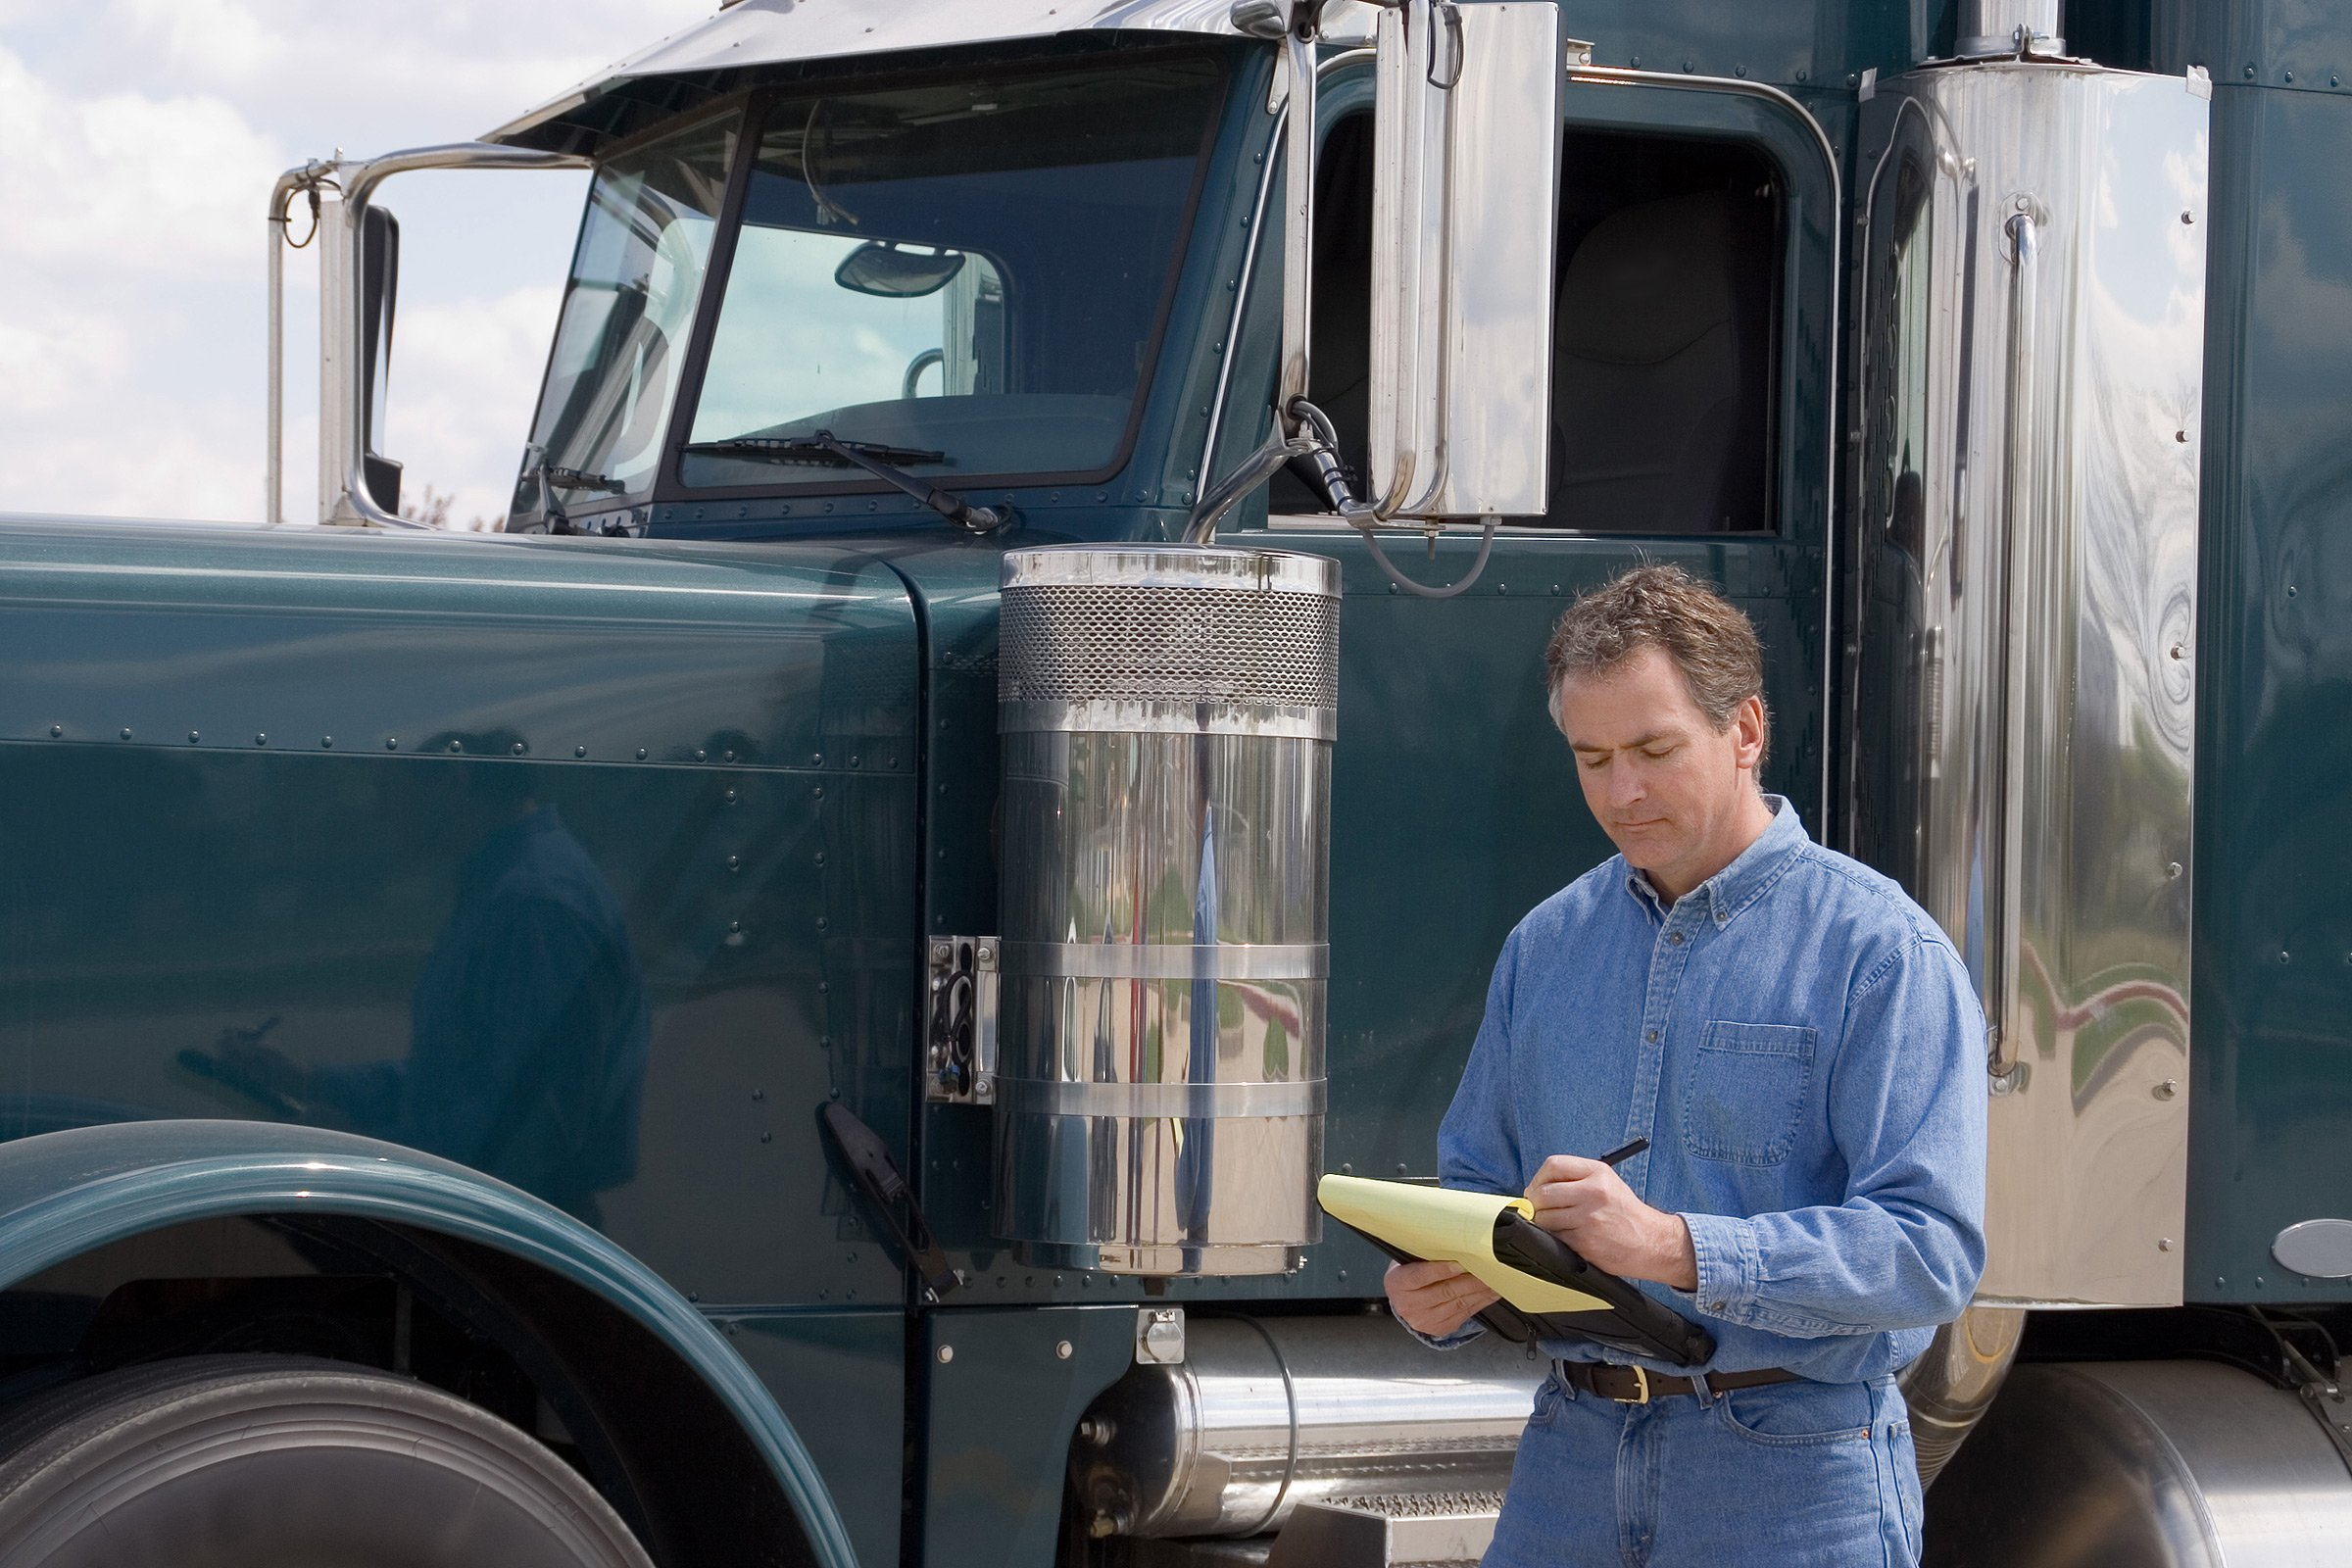 Truck Driver Writing on iPad